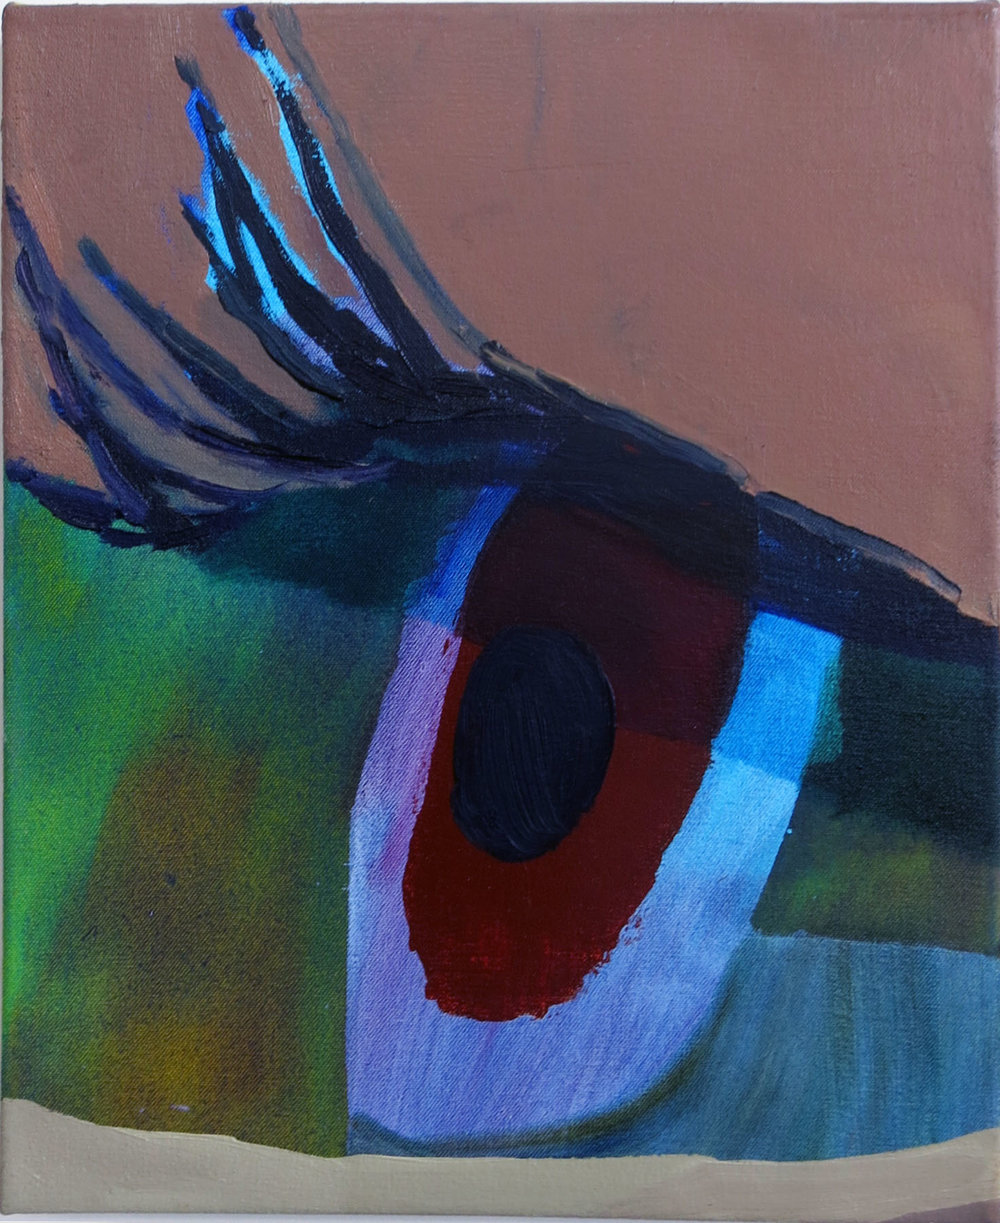 Eye I,  Sarah Faux, 2015, oil on canvas, 15h x 12w in.